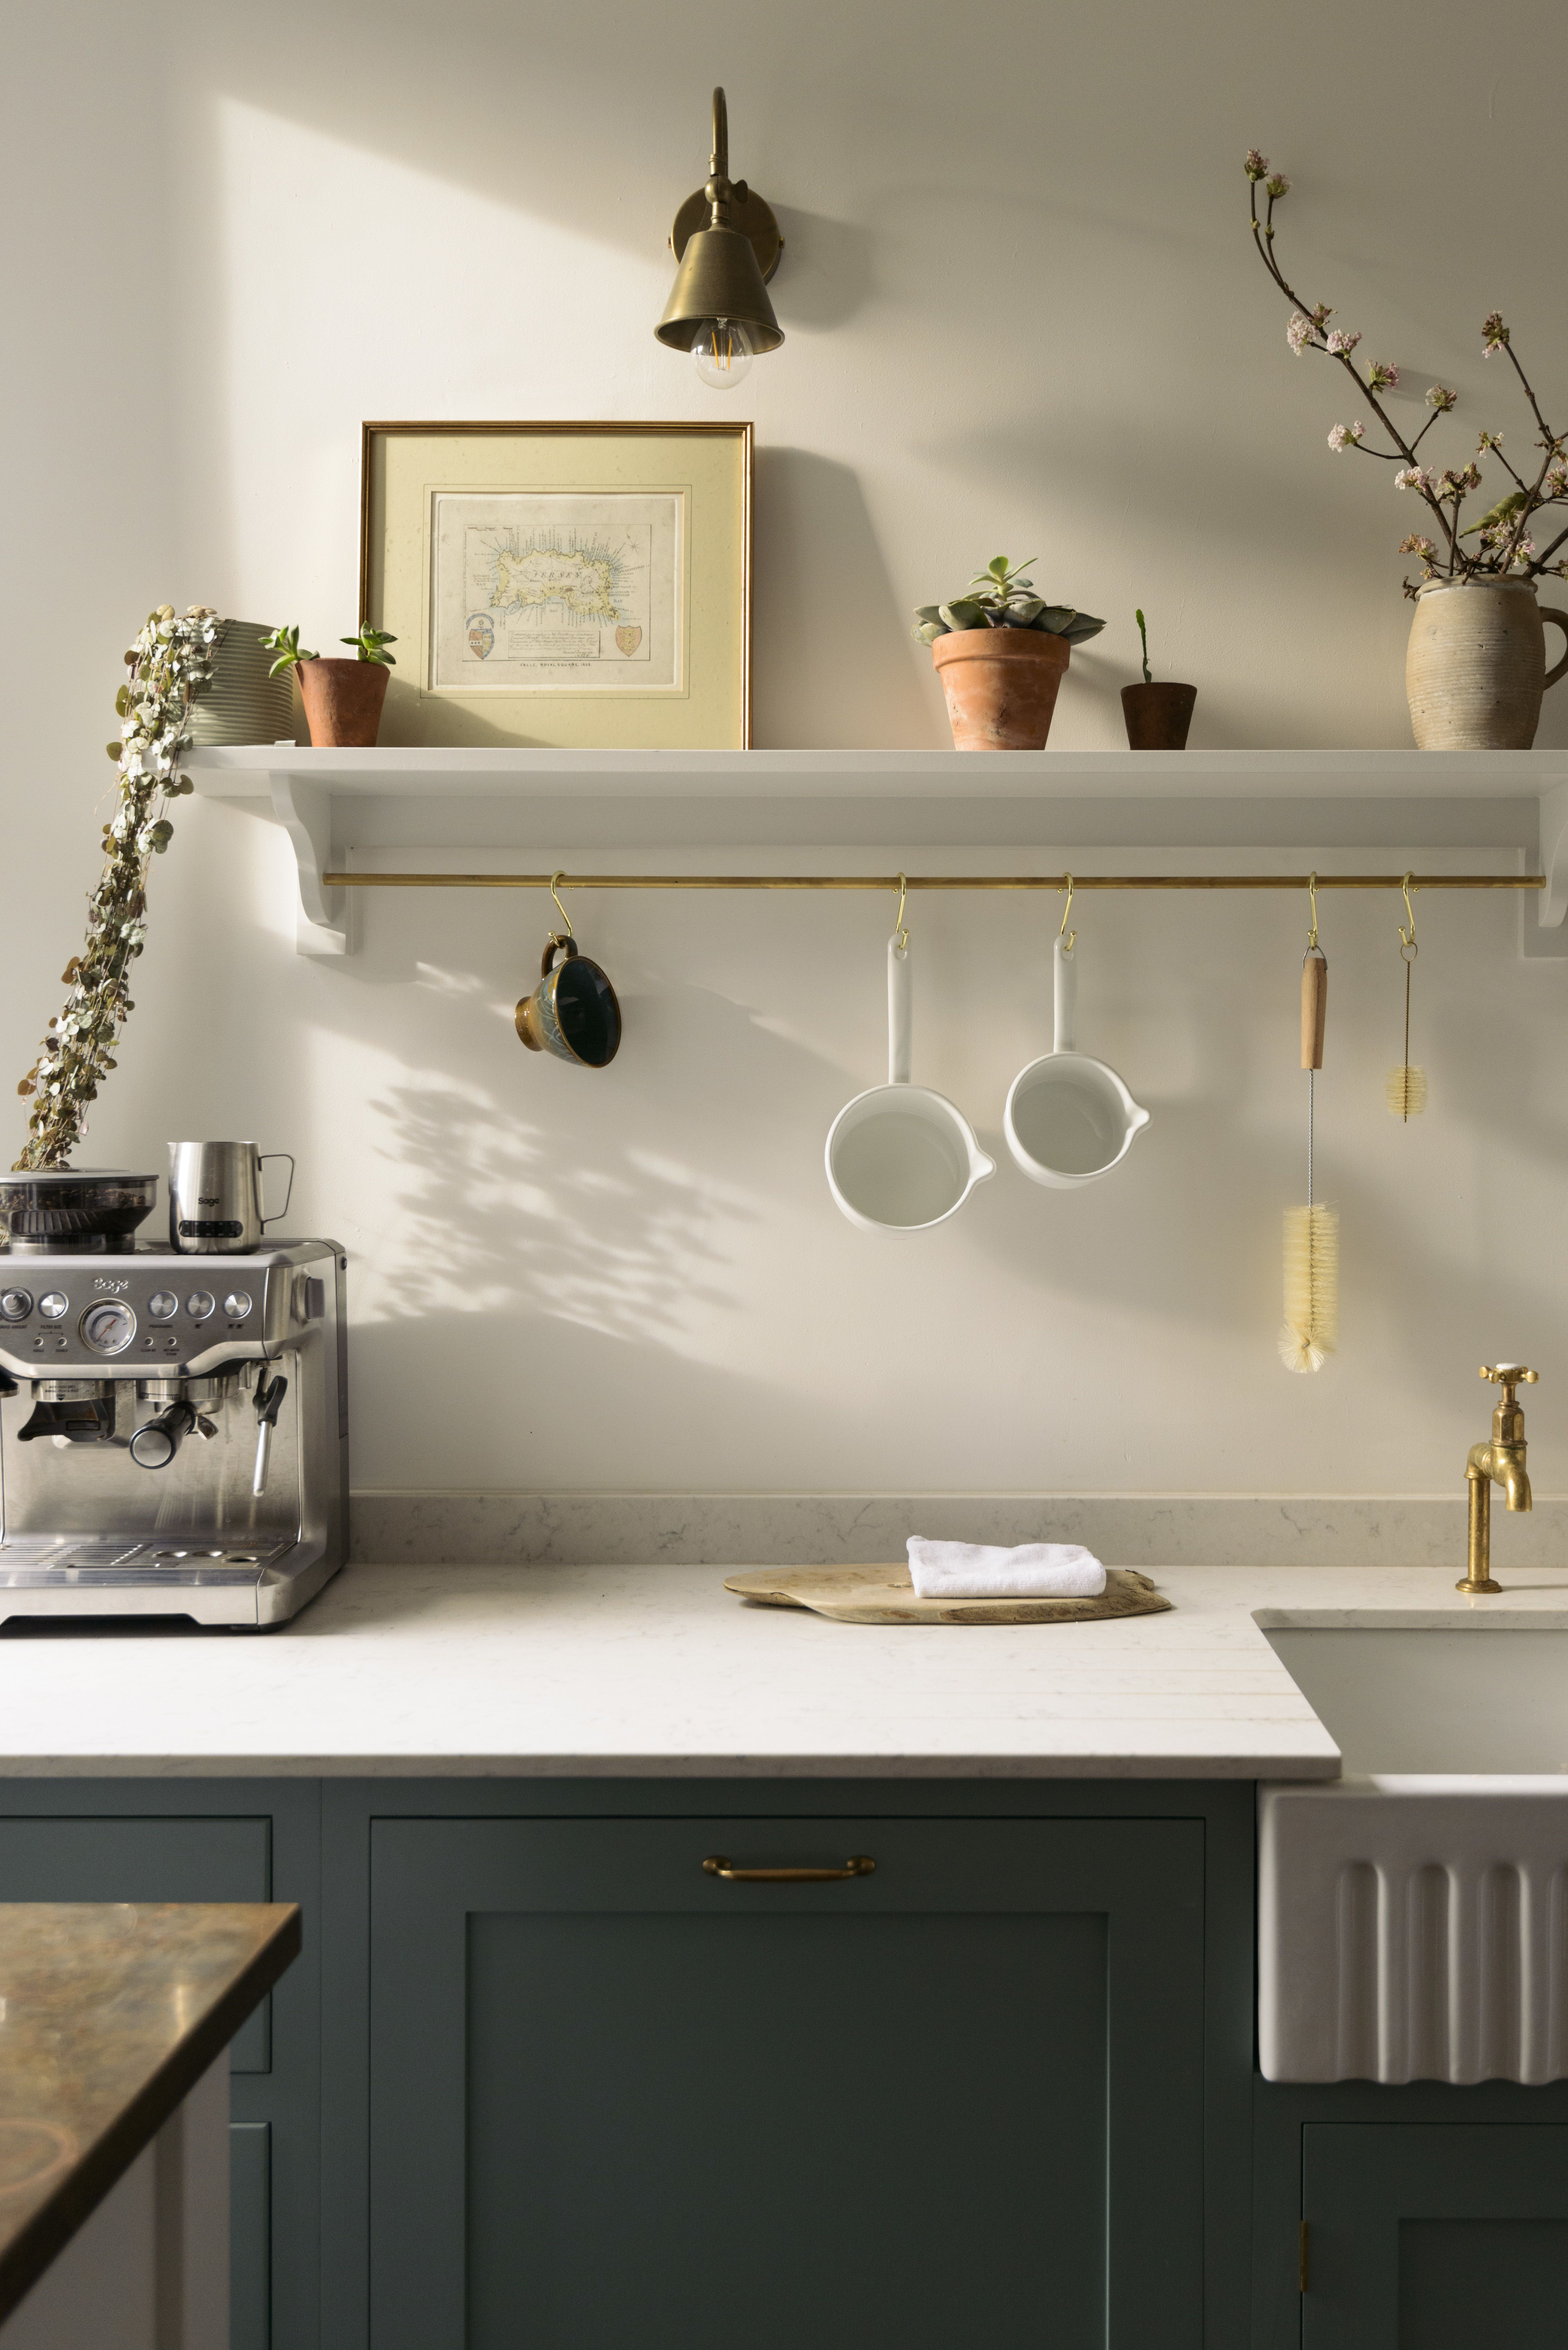 A Kitchen Rail Is The 30 Secret To Extra Storage Space Kitchen Rails Kitchen Storage Kitchen Storage Solutions